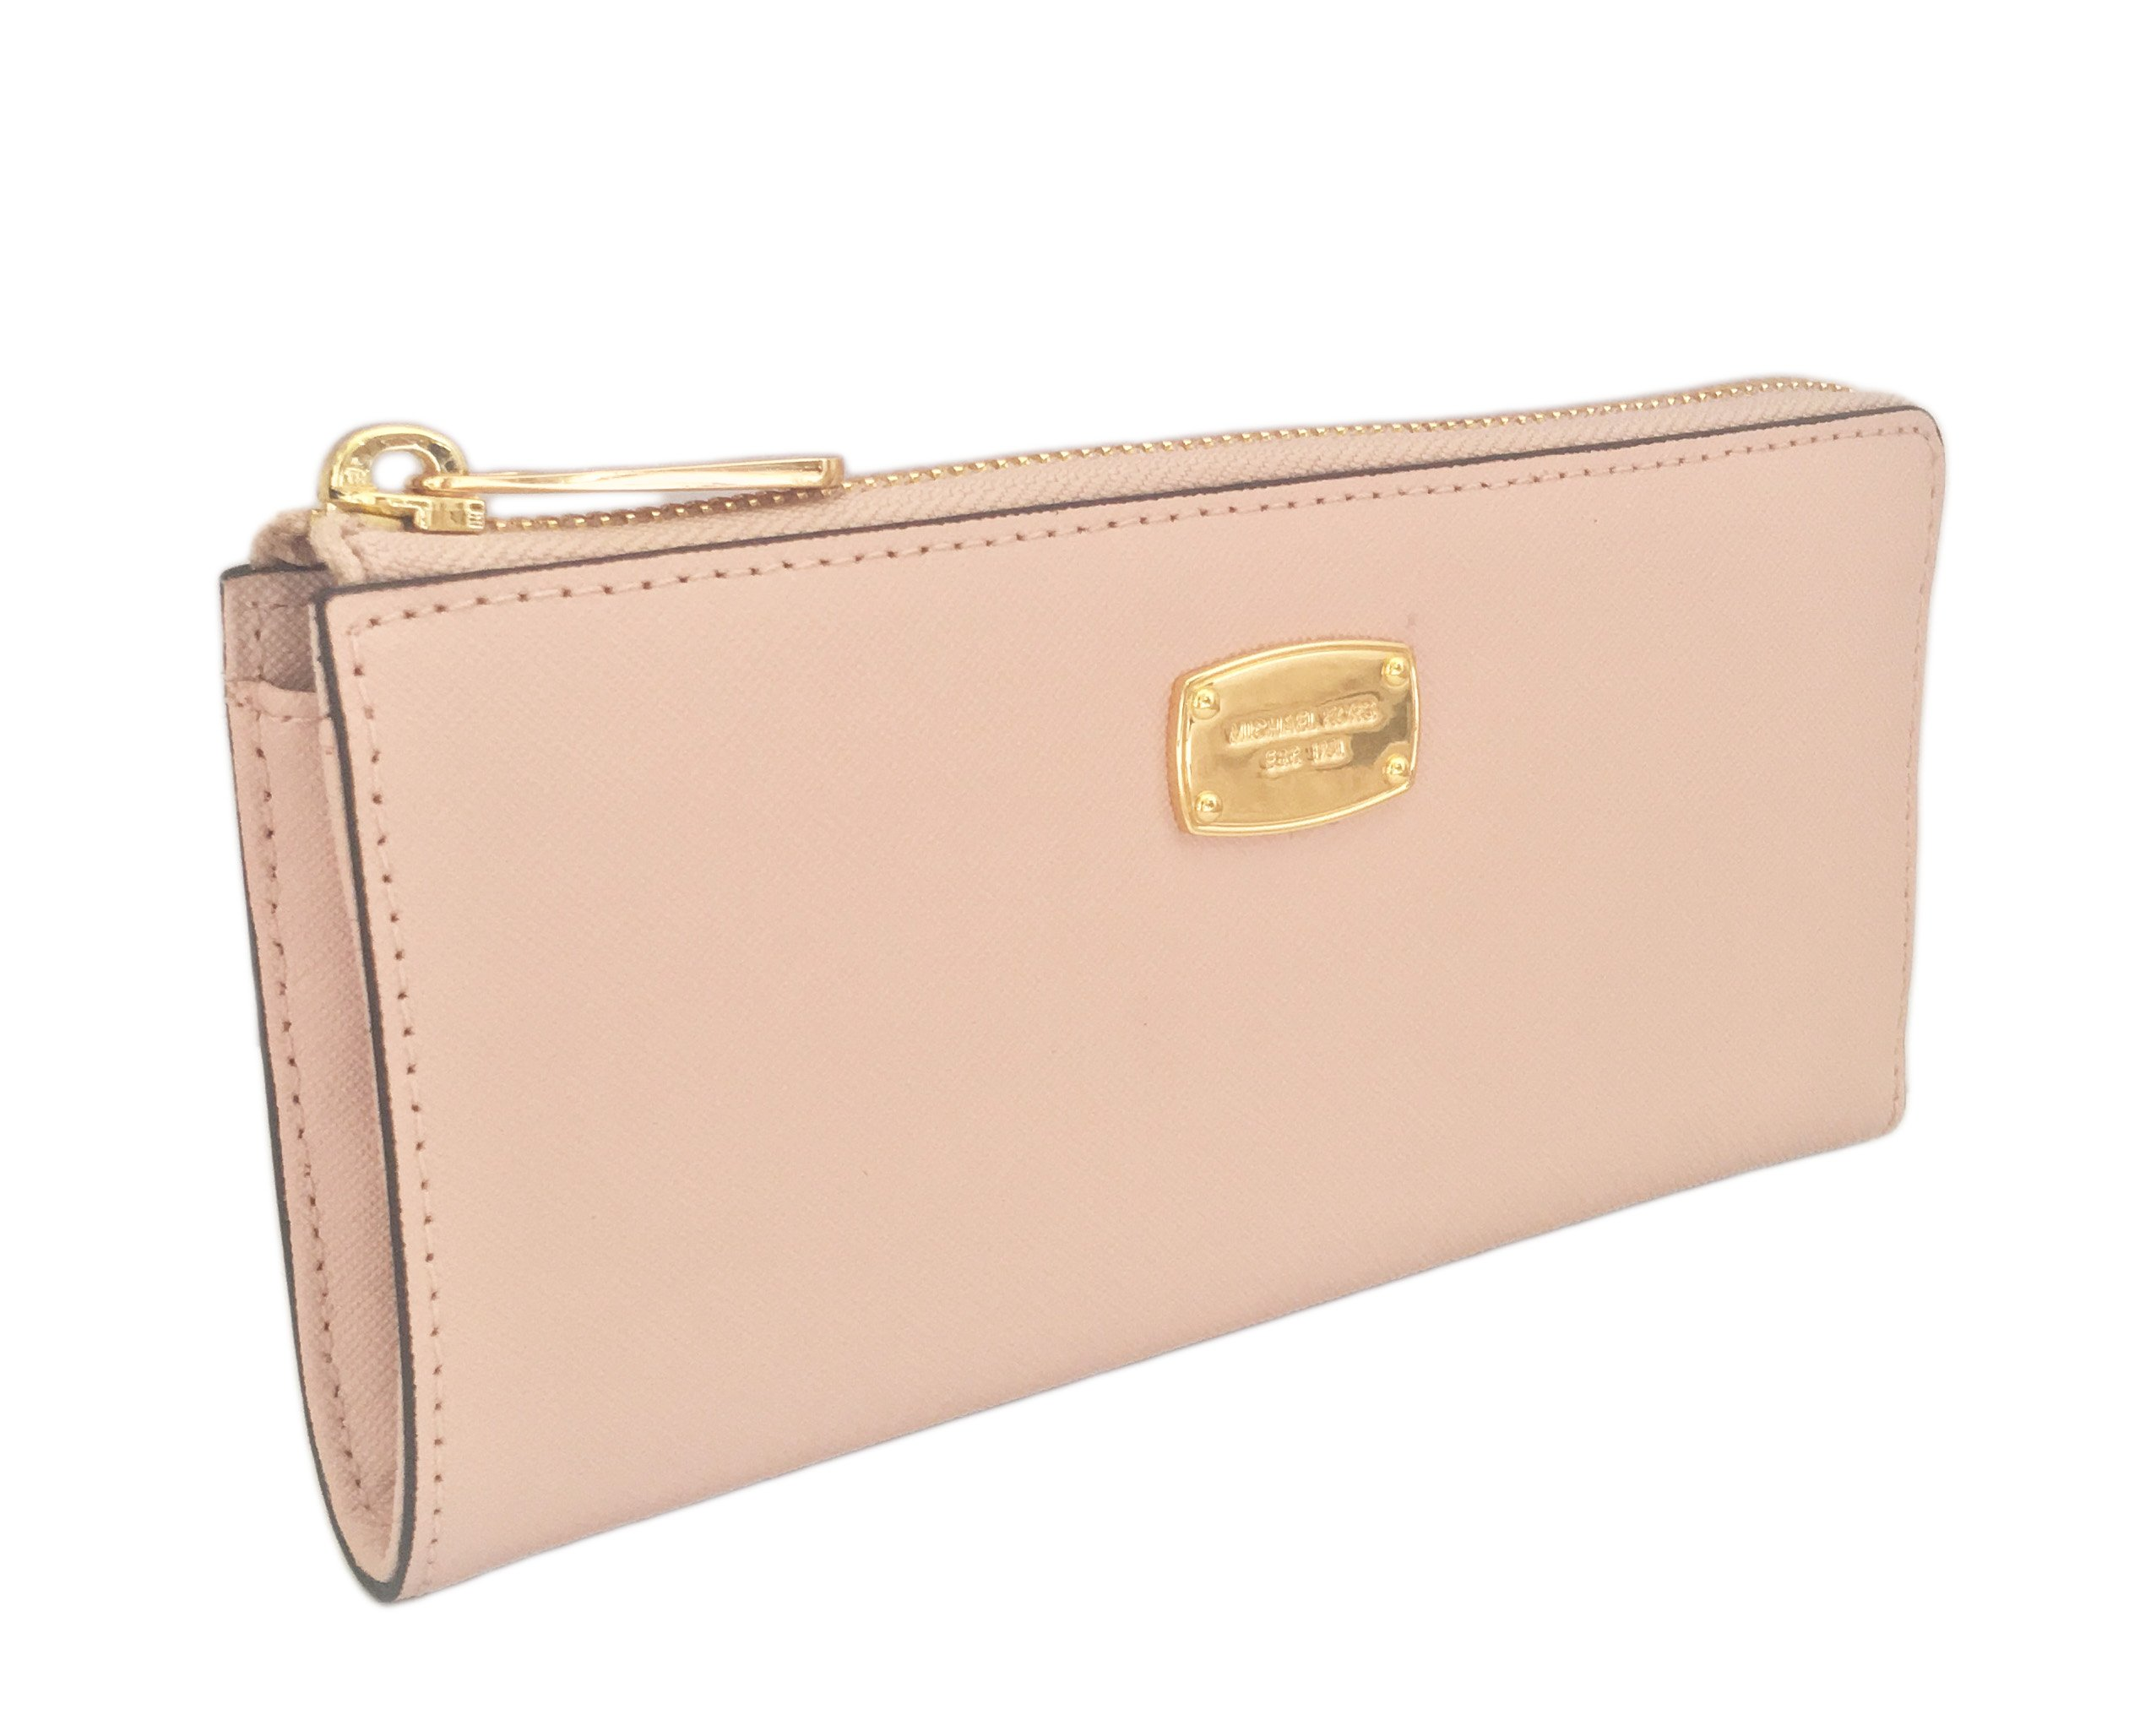 Michael Kors Jet Set Travel Large Three Quarter Zip Around Leather Wallet (Blossom Pink) by Michael Kors